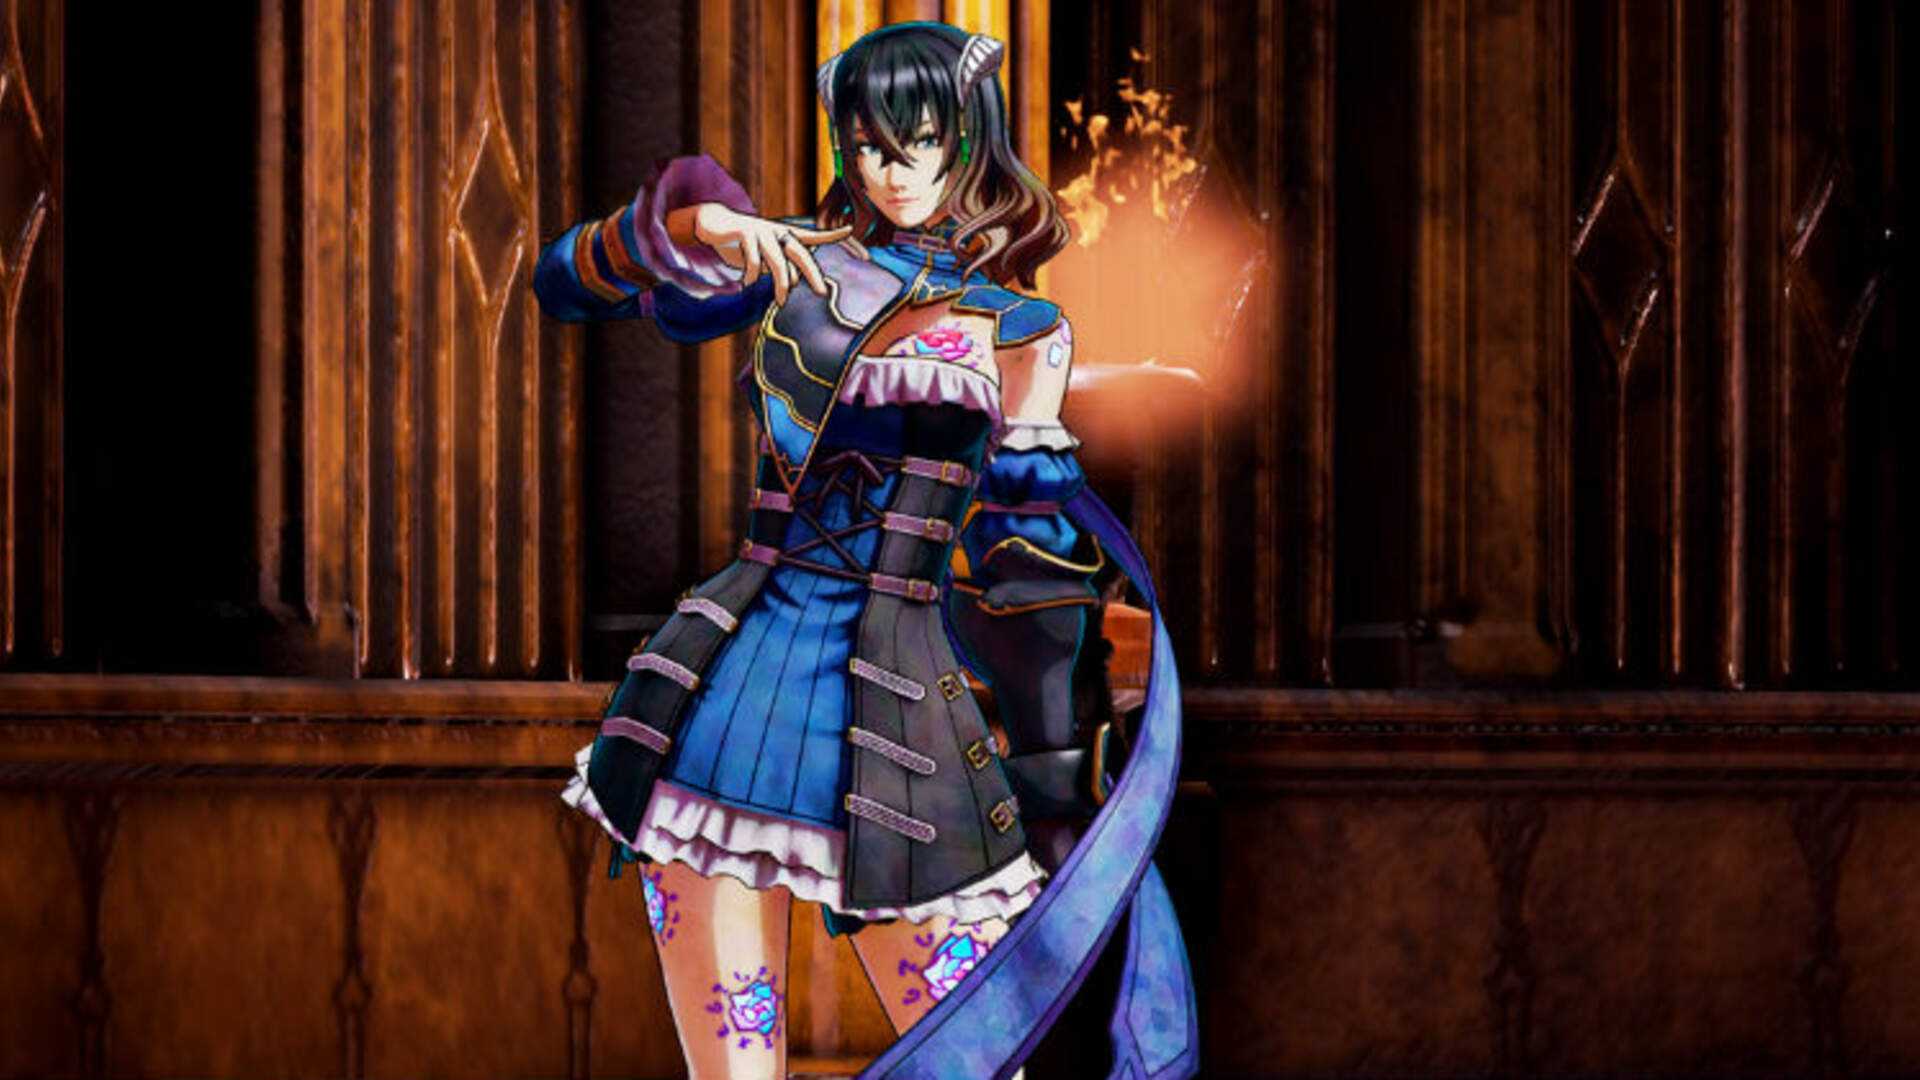 Bloodstained Wins the Prize for E3's Best Thinly Veiled Version of an Abandoned Series